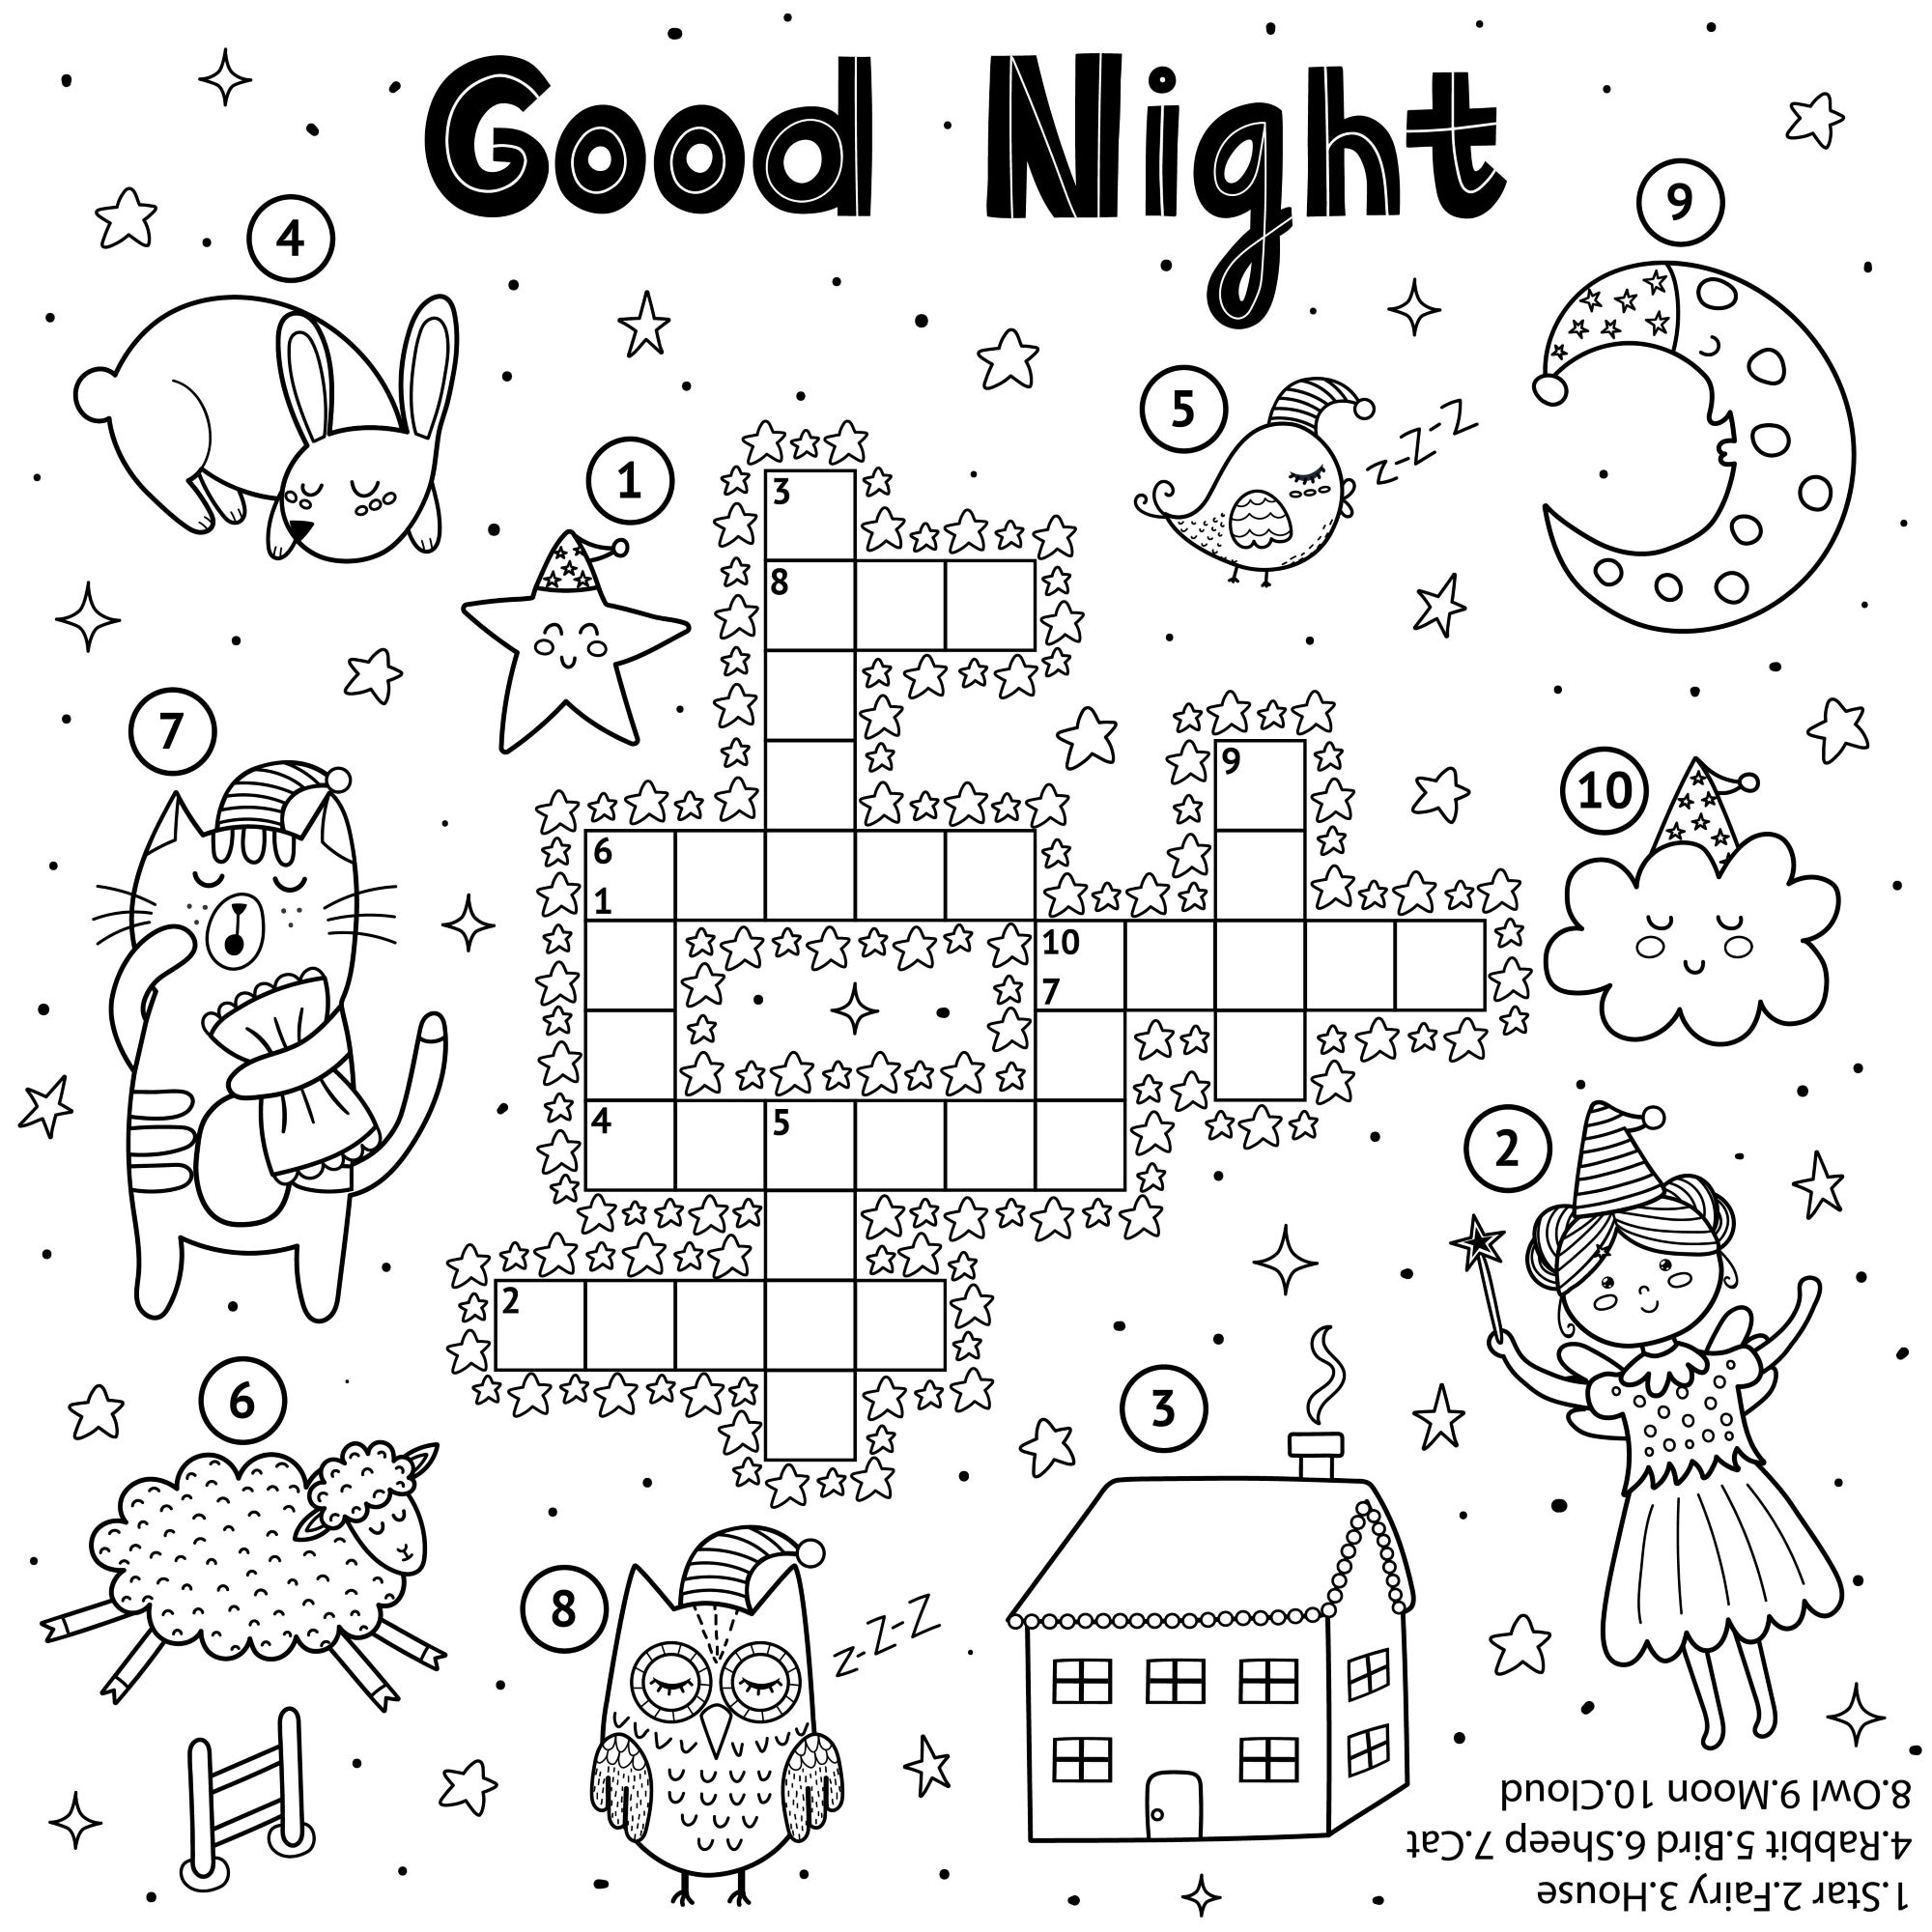 Fun Crossword Puzzles For Kids To Print